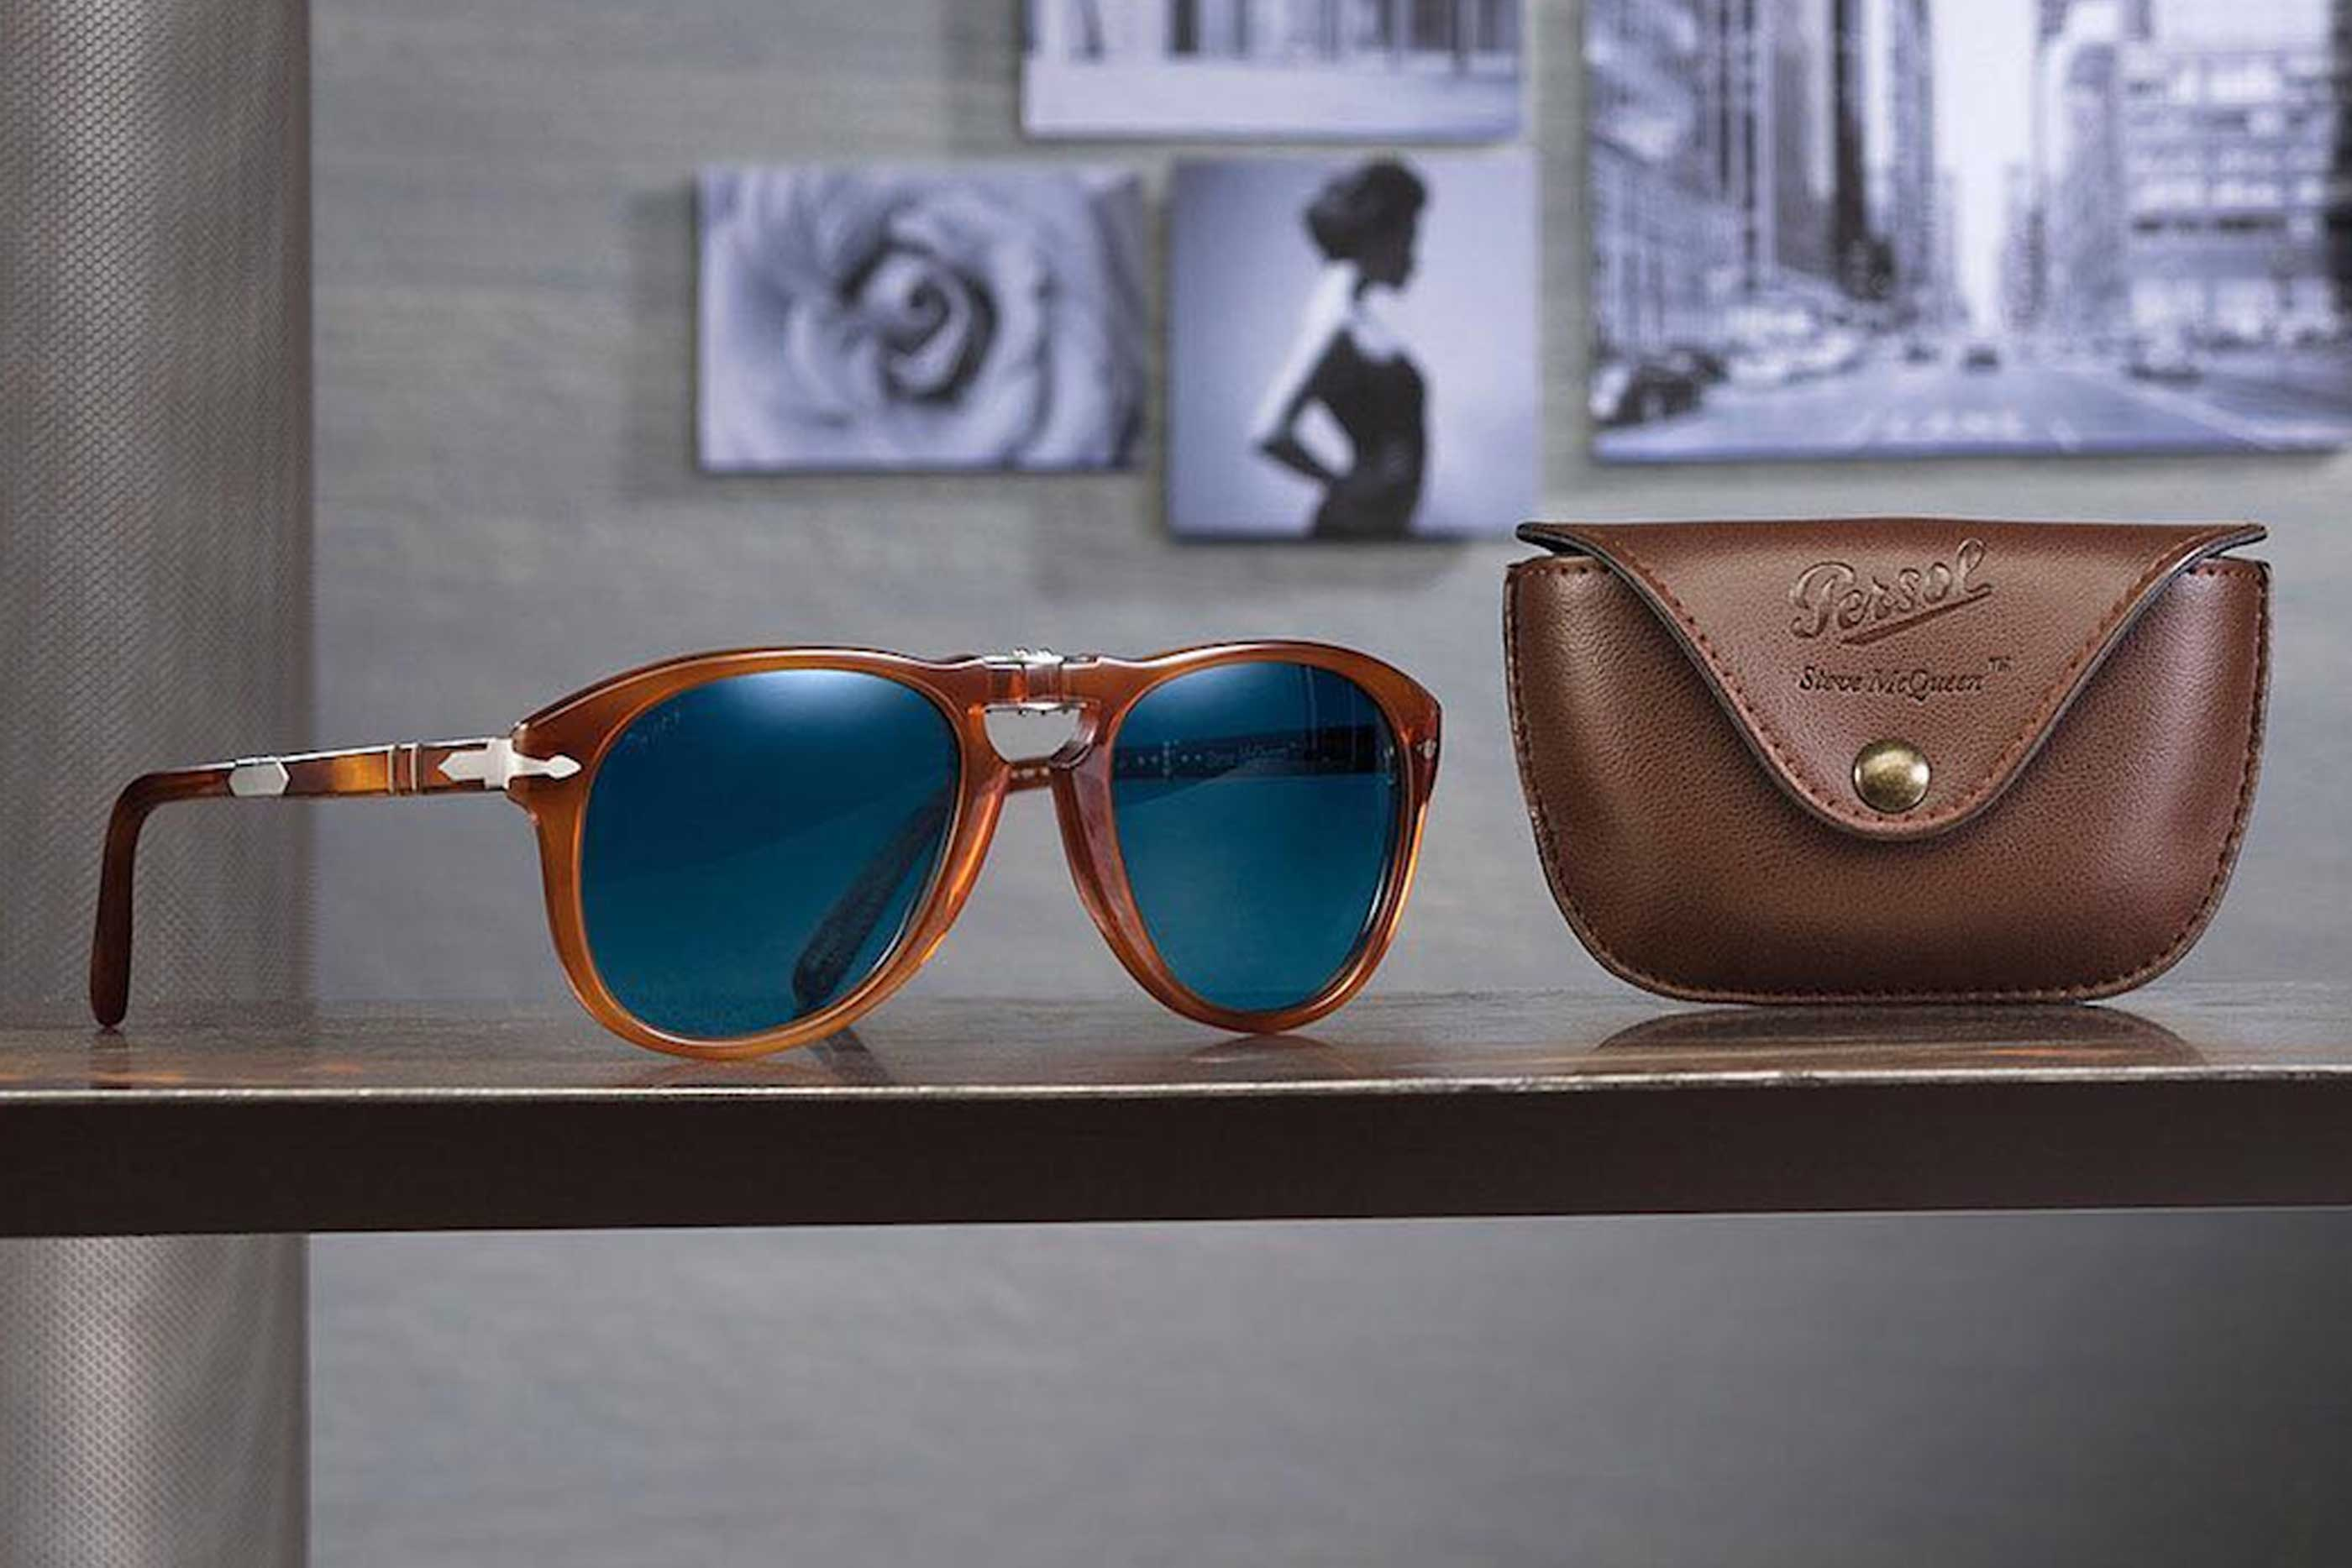 3eb58a5e79 ▷ Persol sunglasses by Steve McQueen – OpticalH